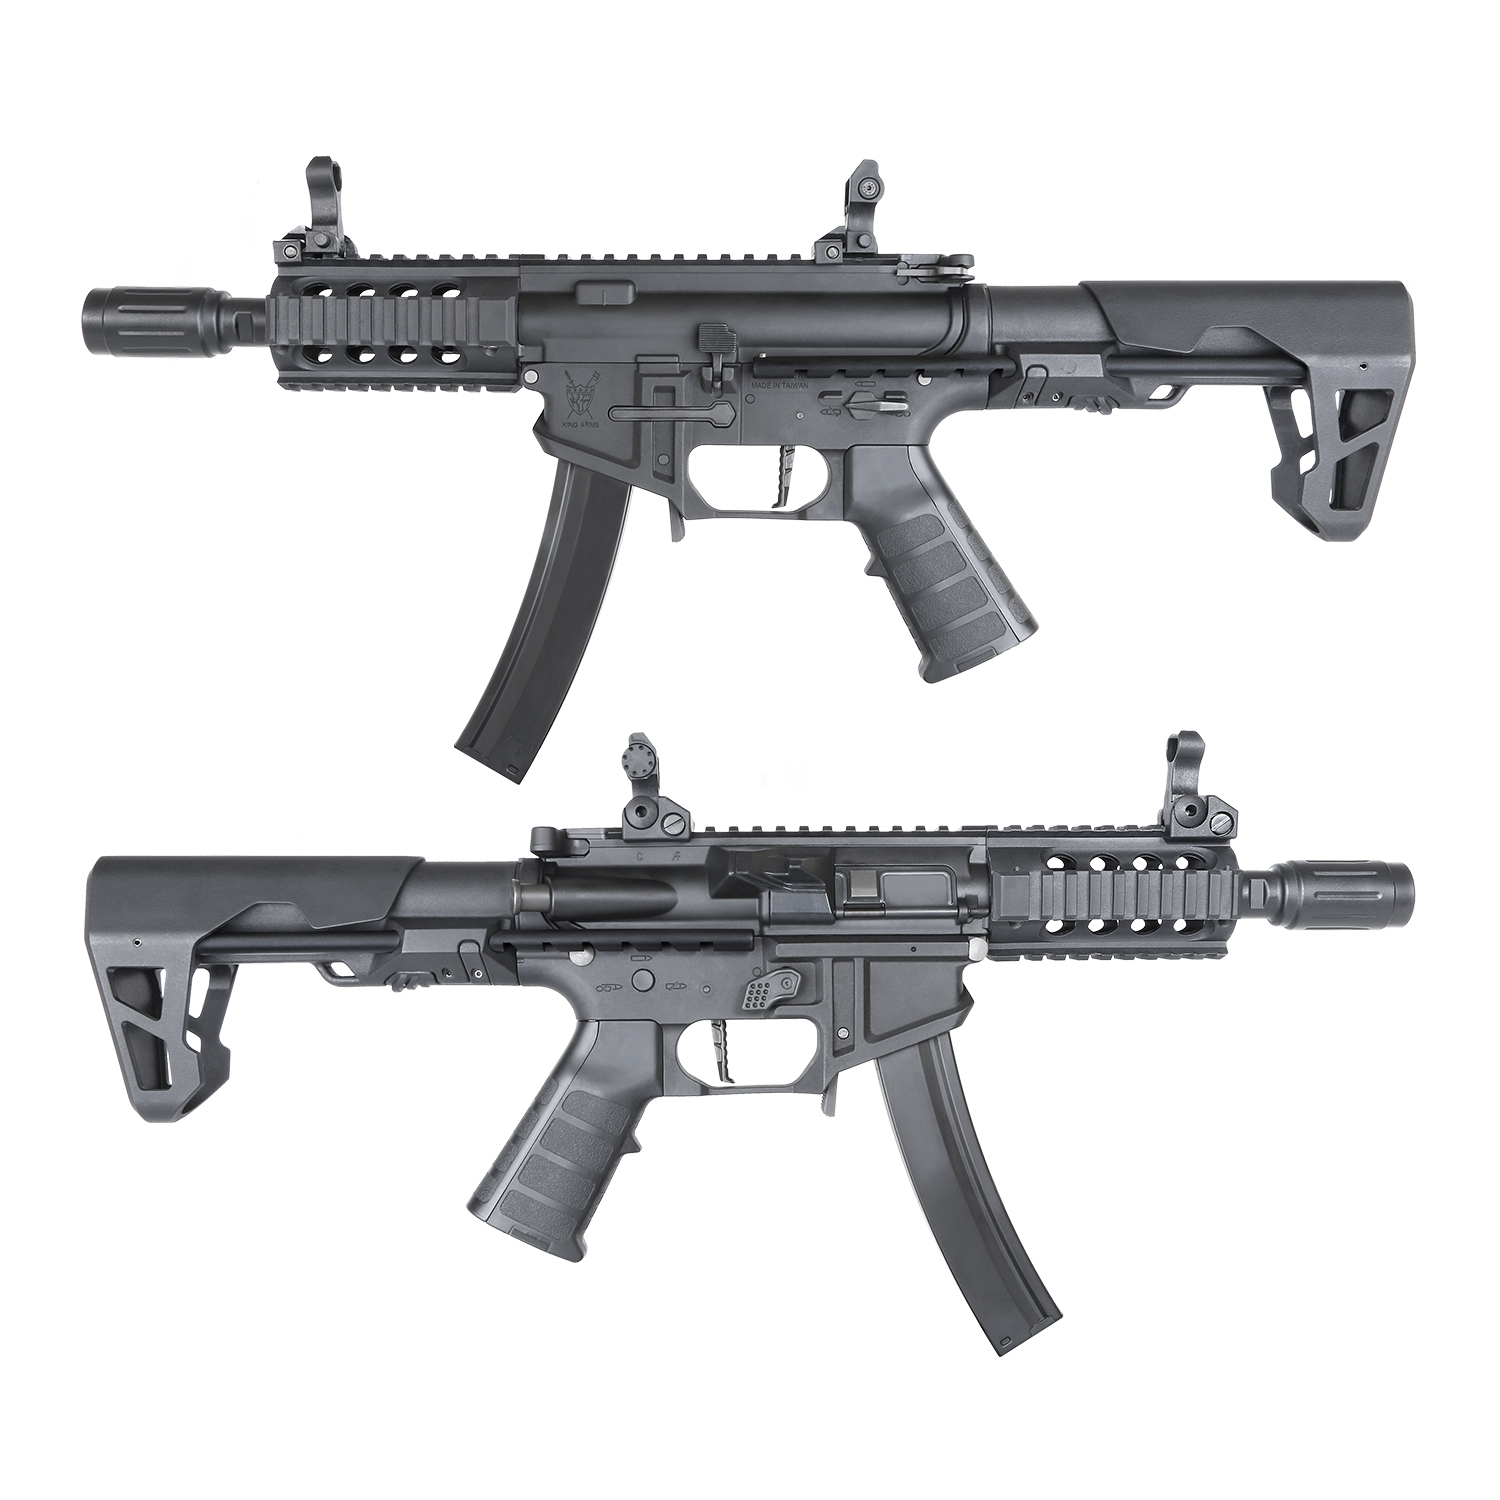 King Arms PDW 9mm SBR Shorty AEG w/ Mosfet - BK (Polymer)